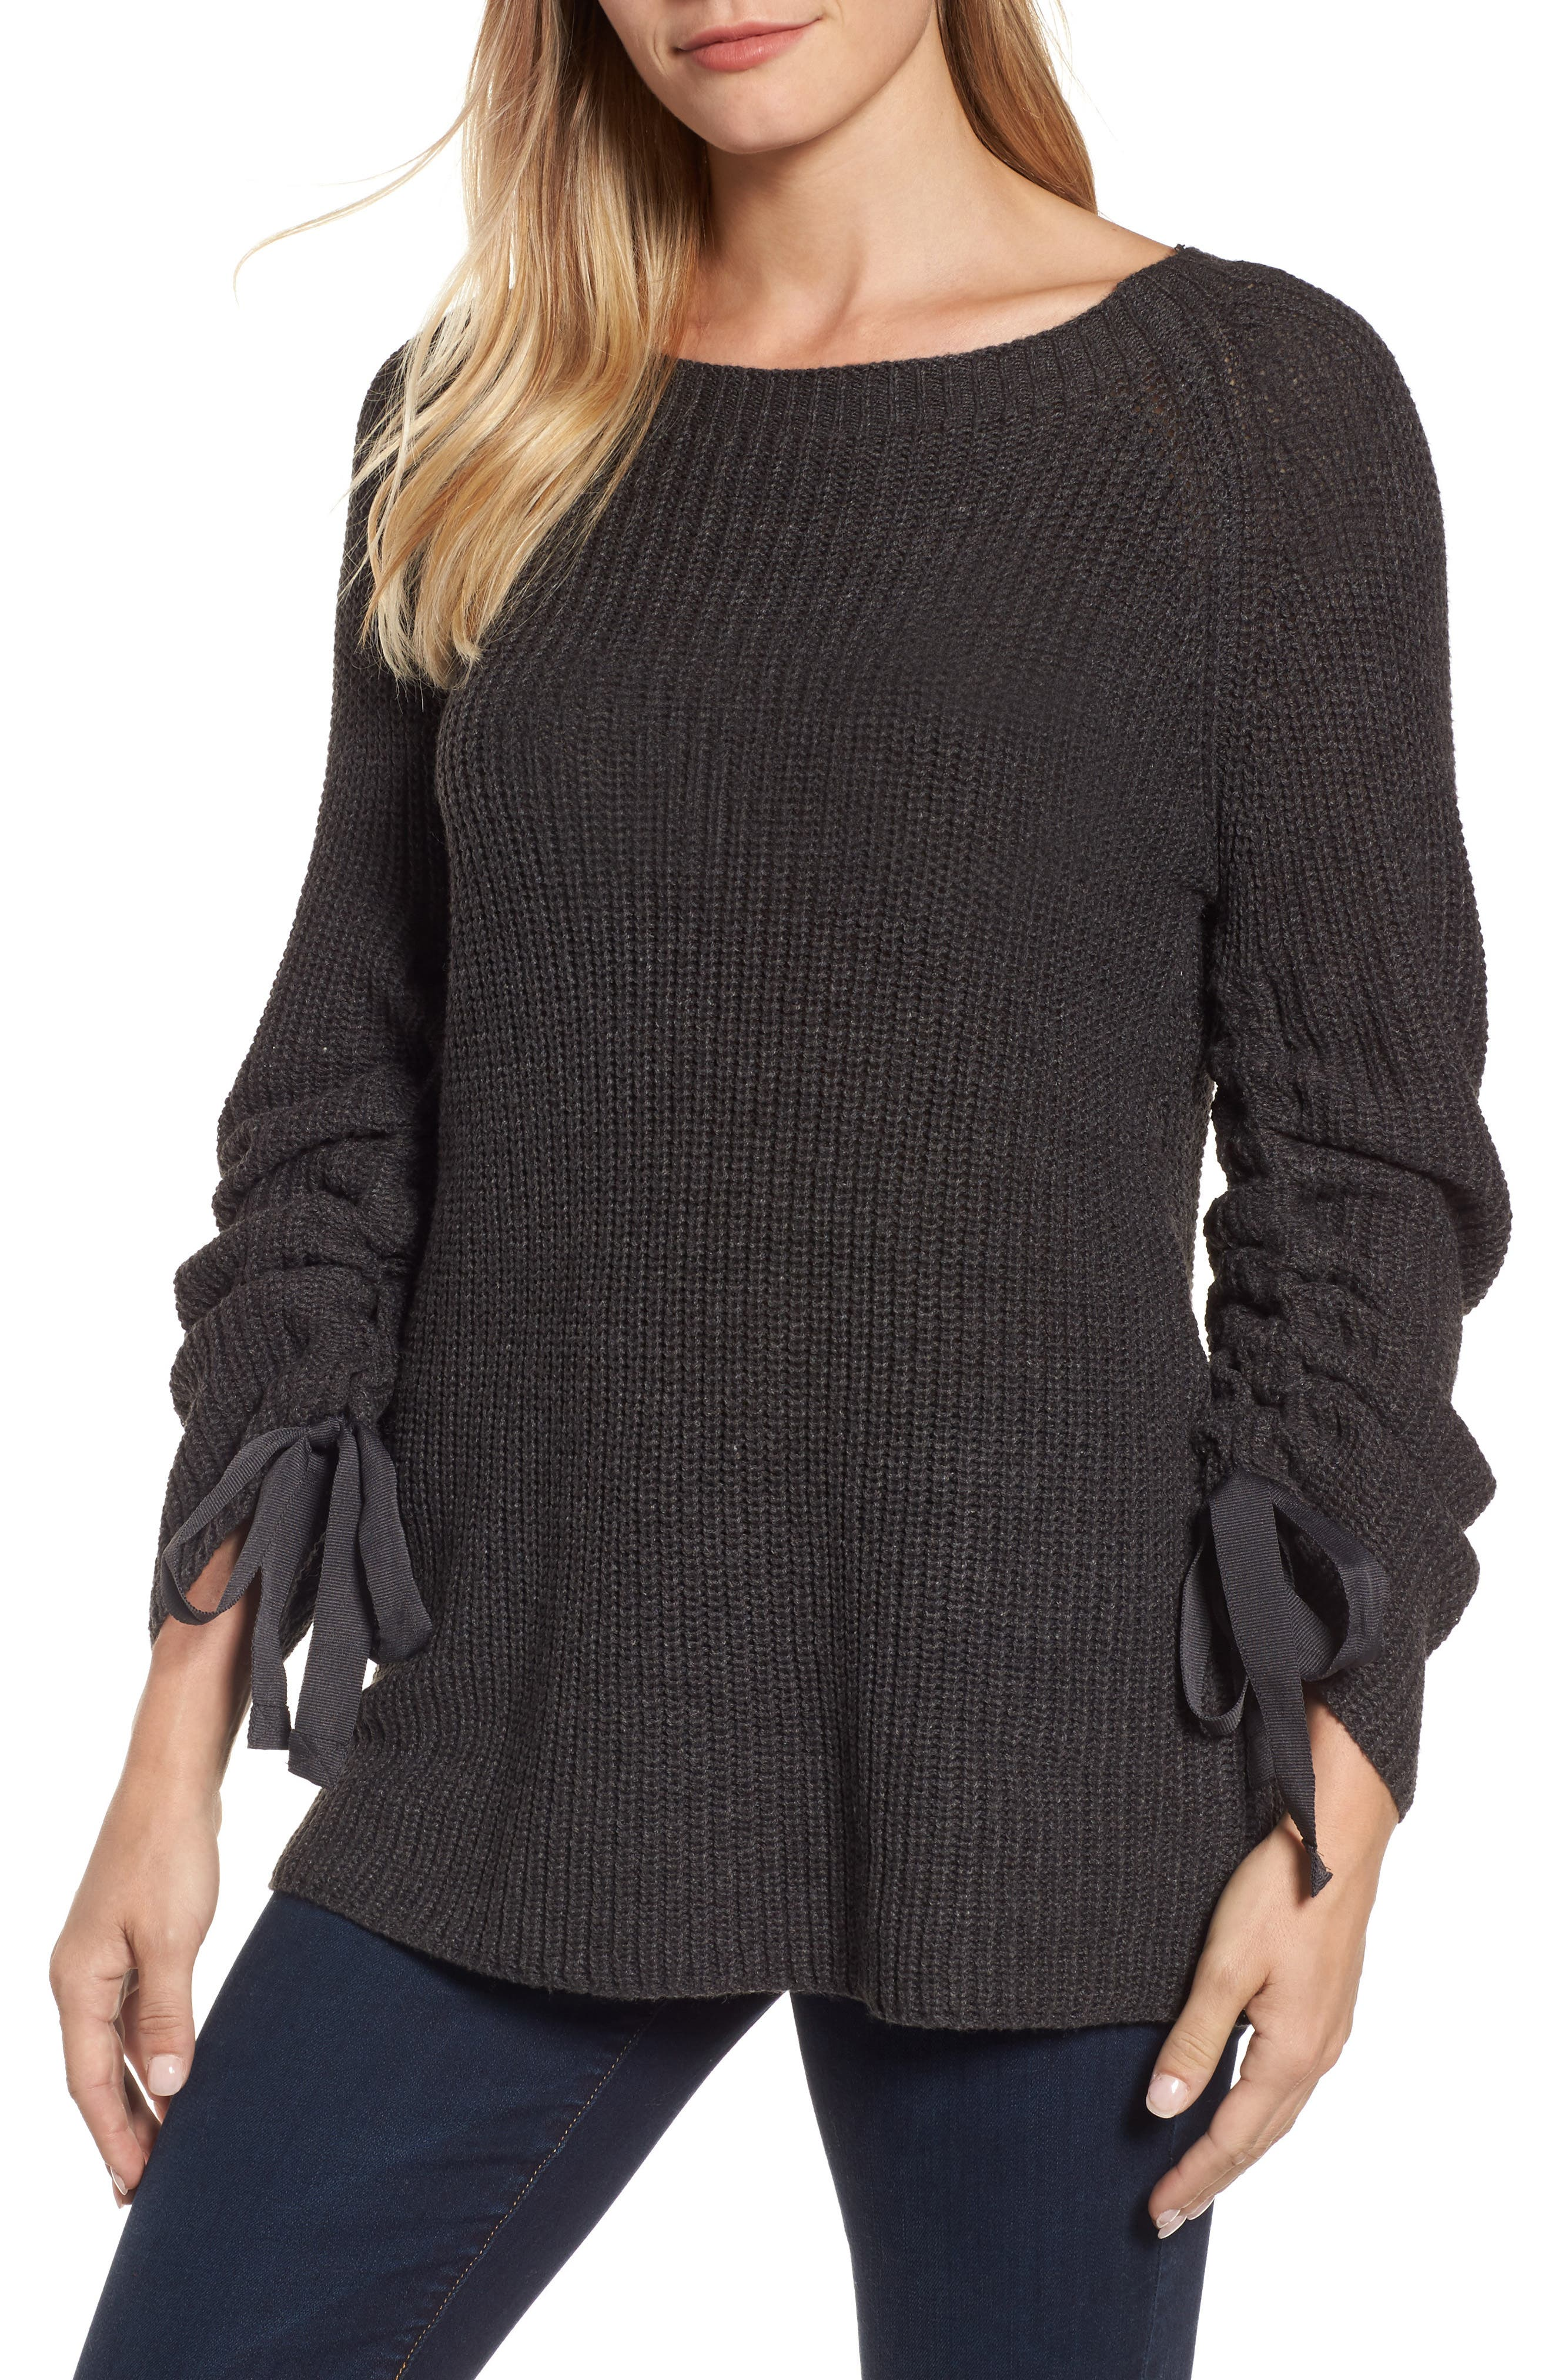 RD Style Tie Sleeve Sweater,                             Main thumbnail 1, color,                             020